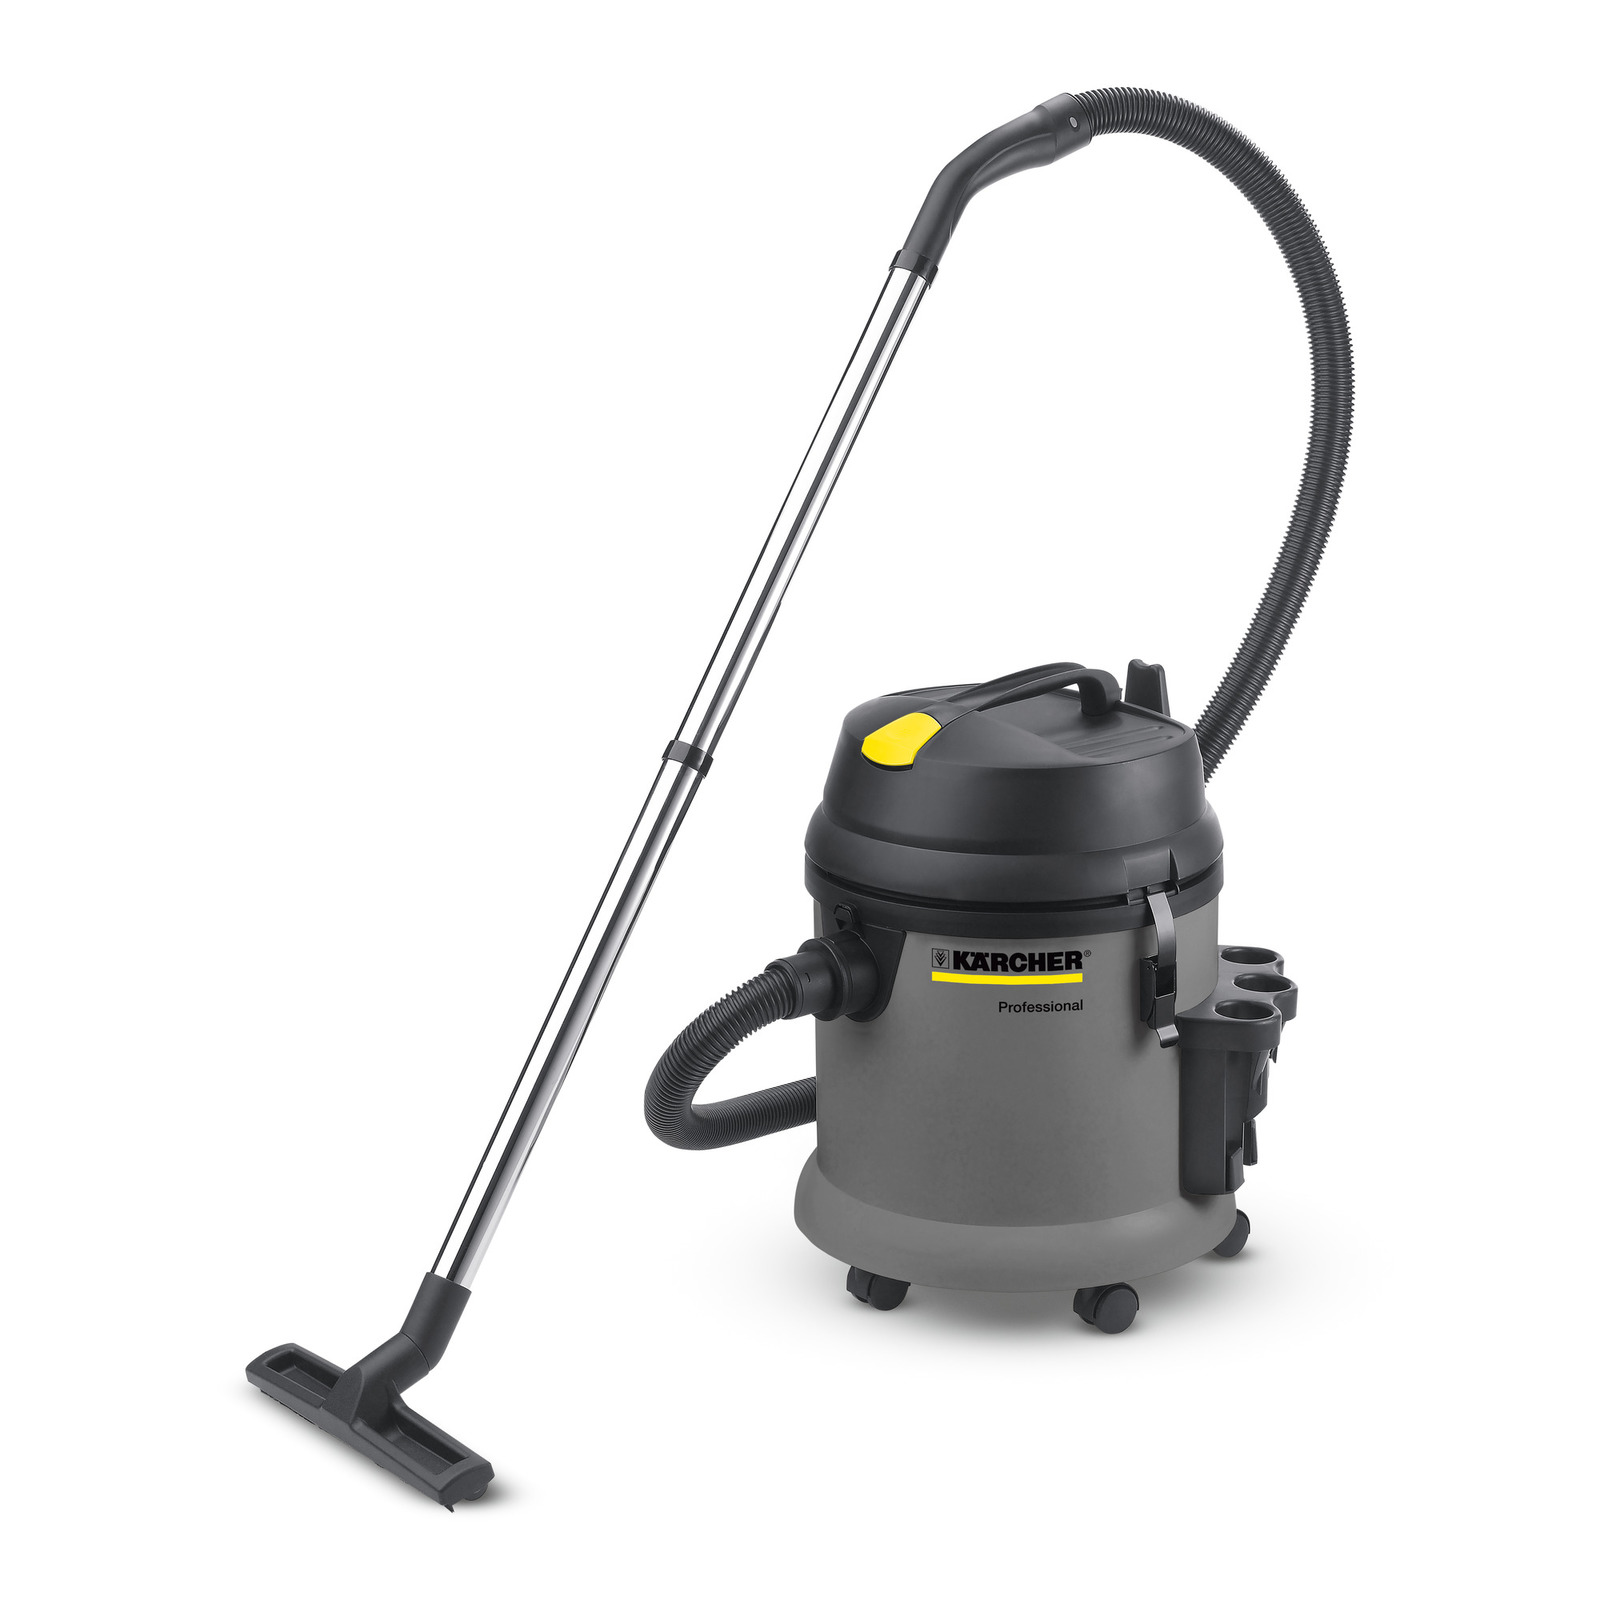 Wet And Dry Vacuum Cleaner Nt 27 1 Karcher Australia